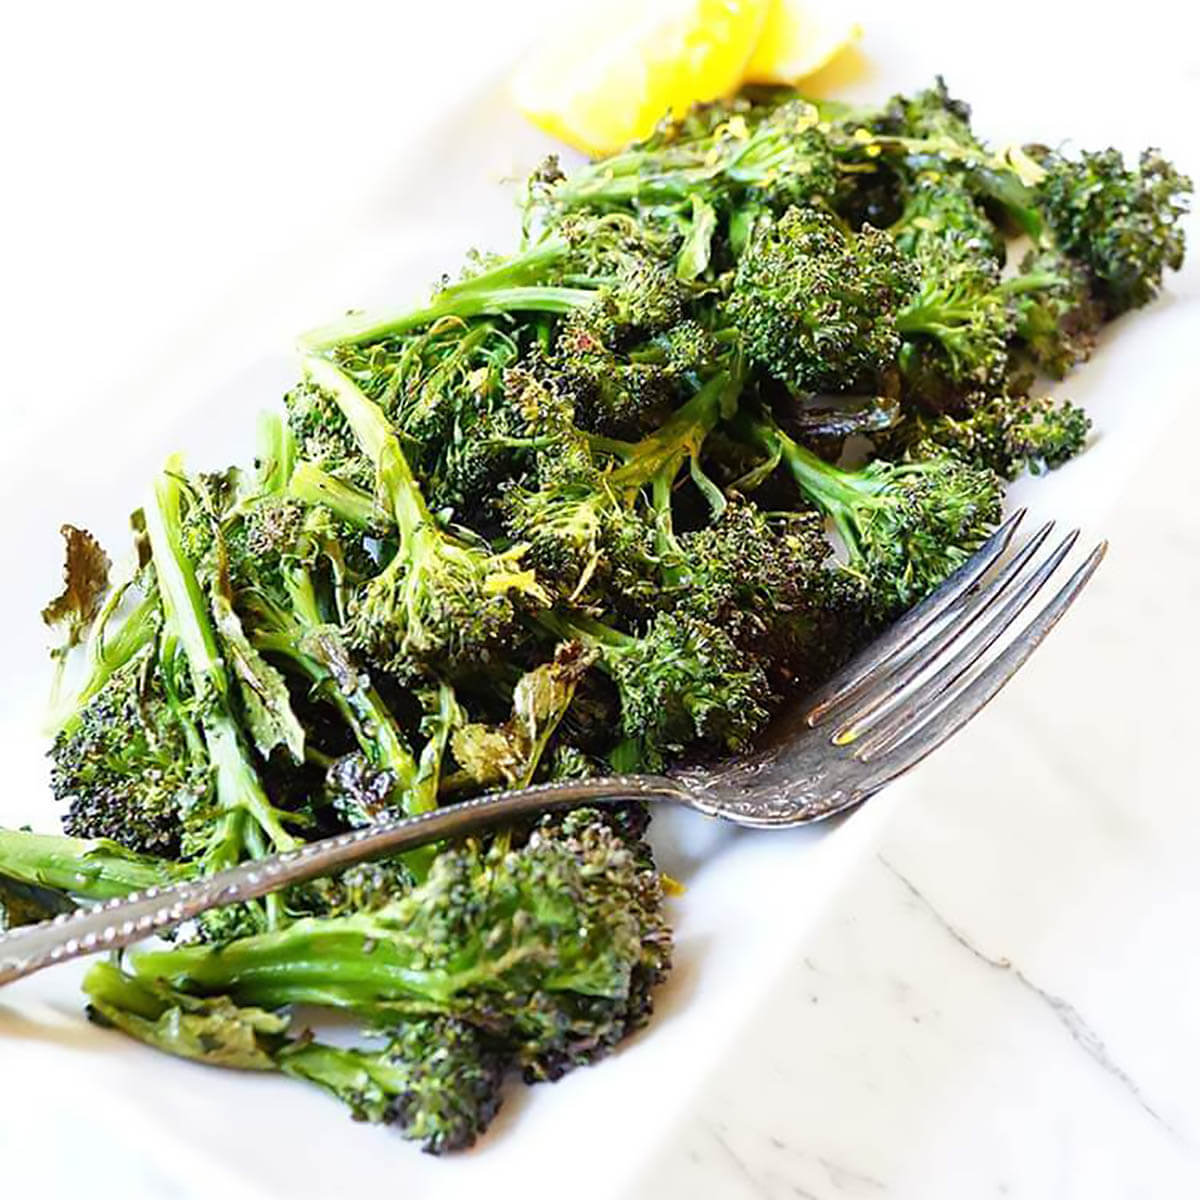 Roasted broccoli on white plater with lemon.